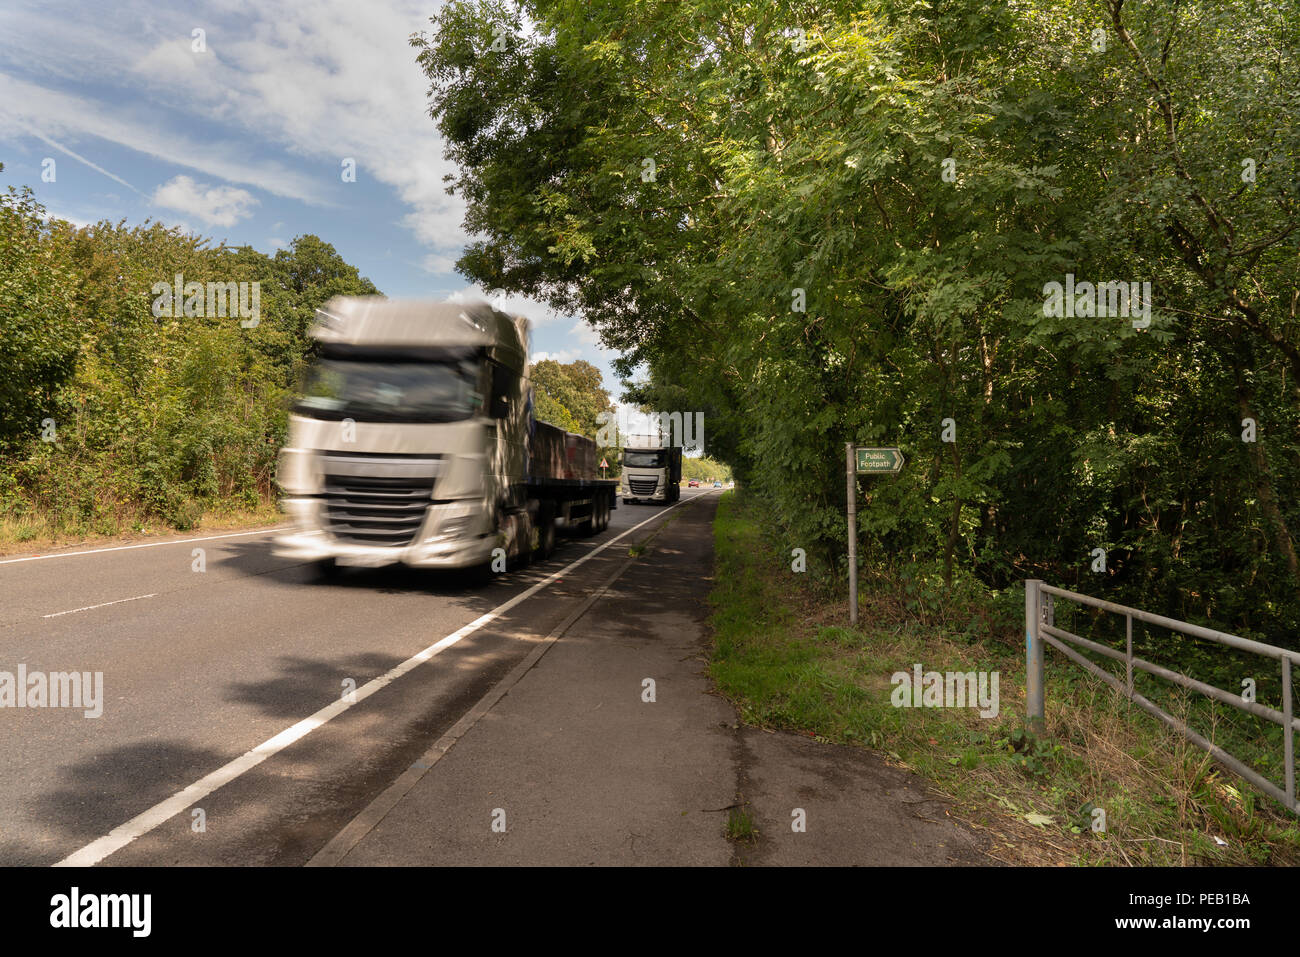 Lorries on the A24 dual carriageway pass close to Binsted Woods, Arundel: Option 5A Arundel Bypass will cut through this ancient woodland. - Stock Image